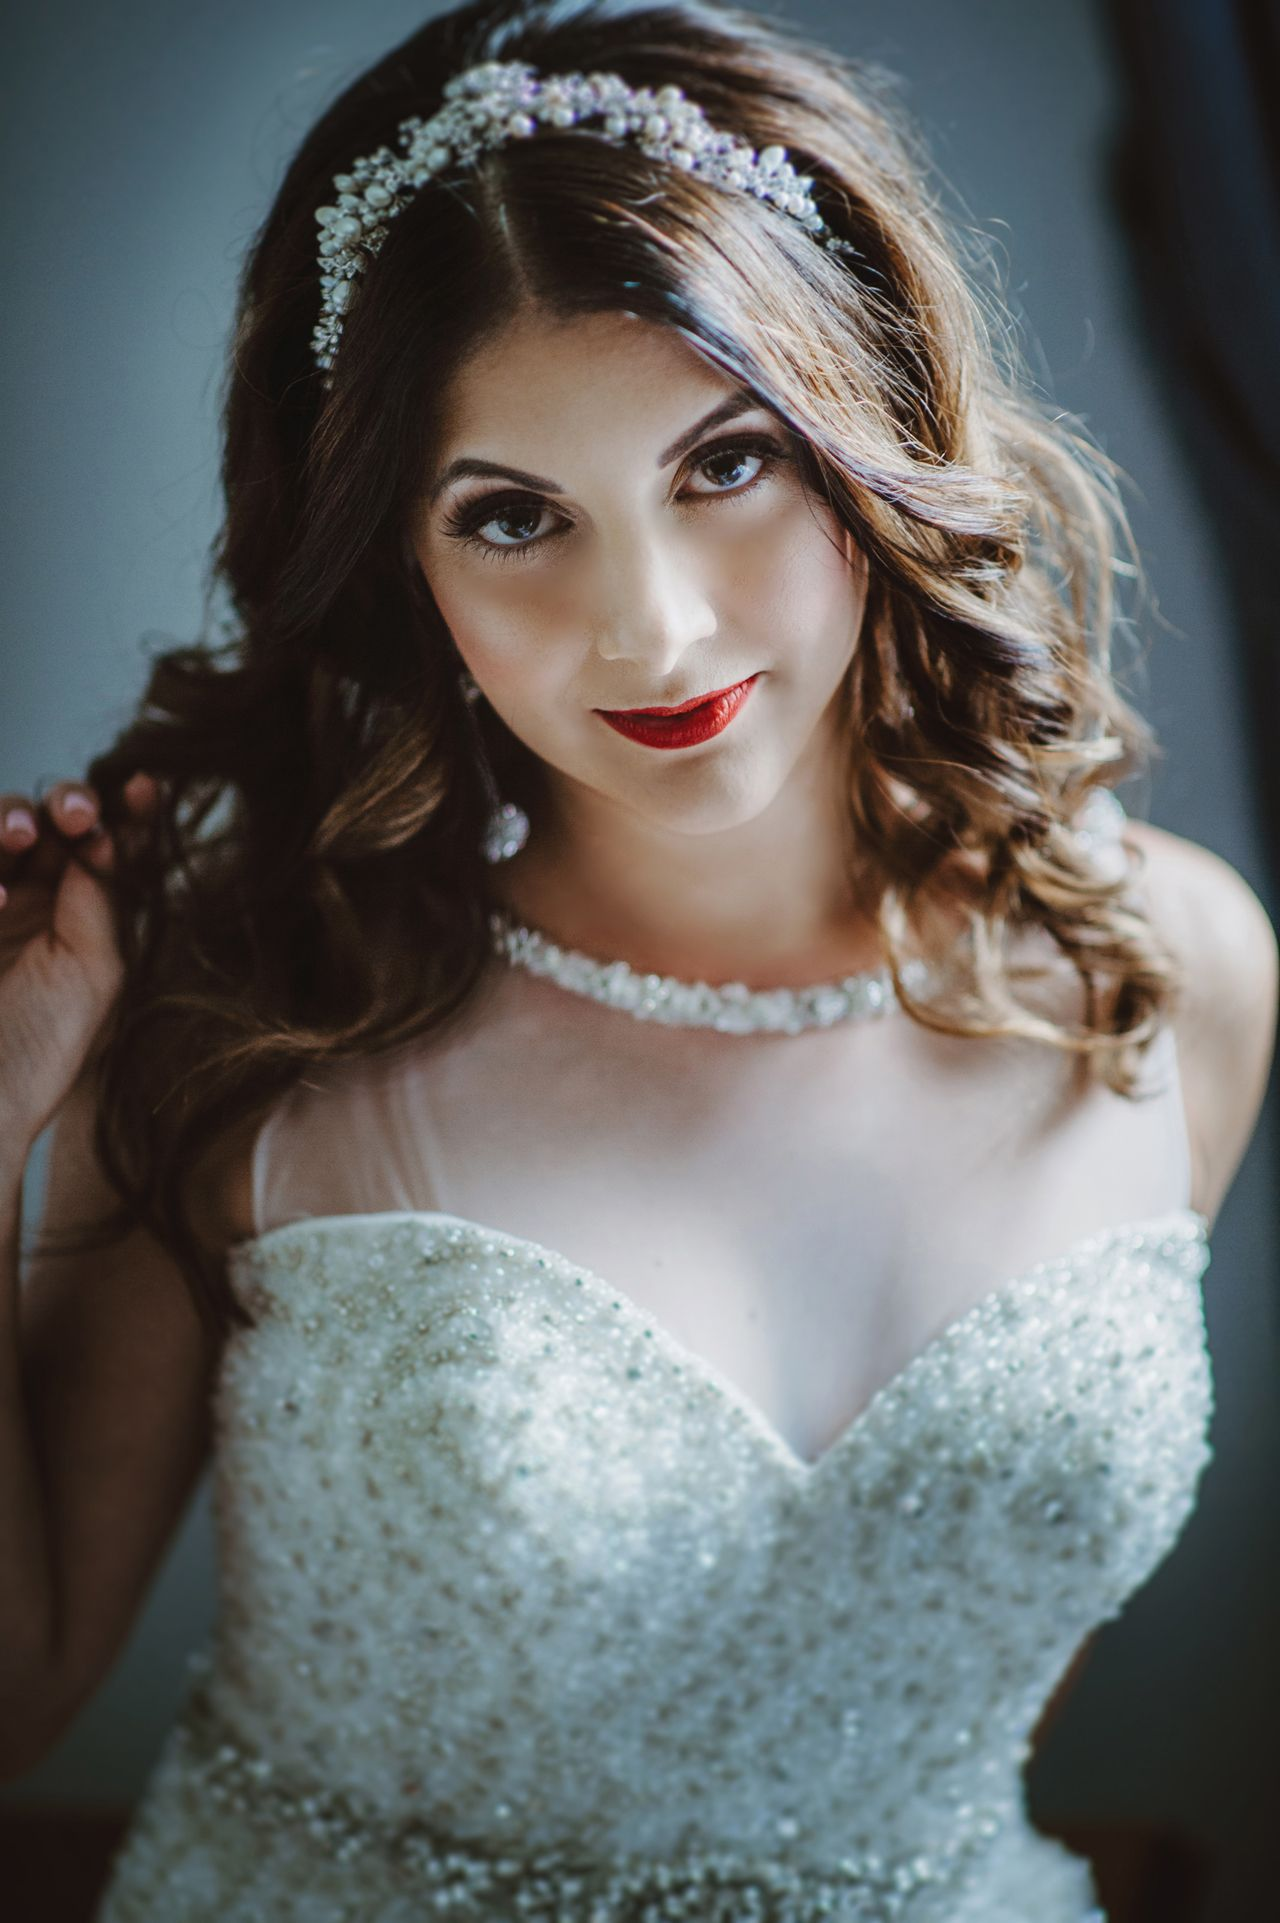 Bride Crystal Beaded Wedding Dress Makeup And Hair By